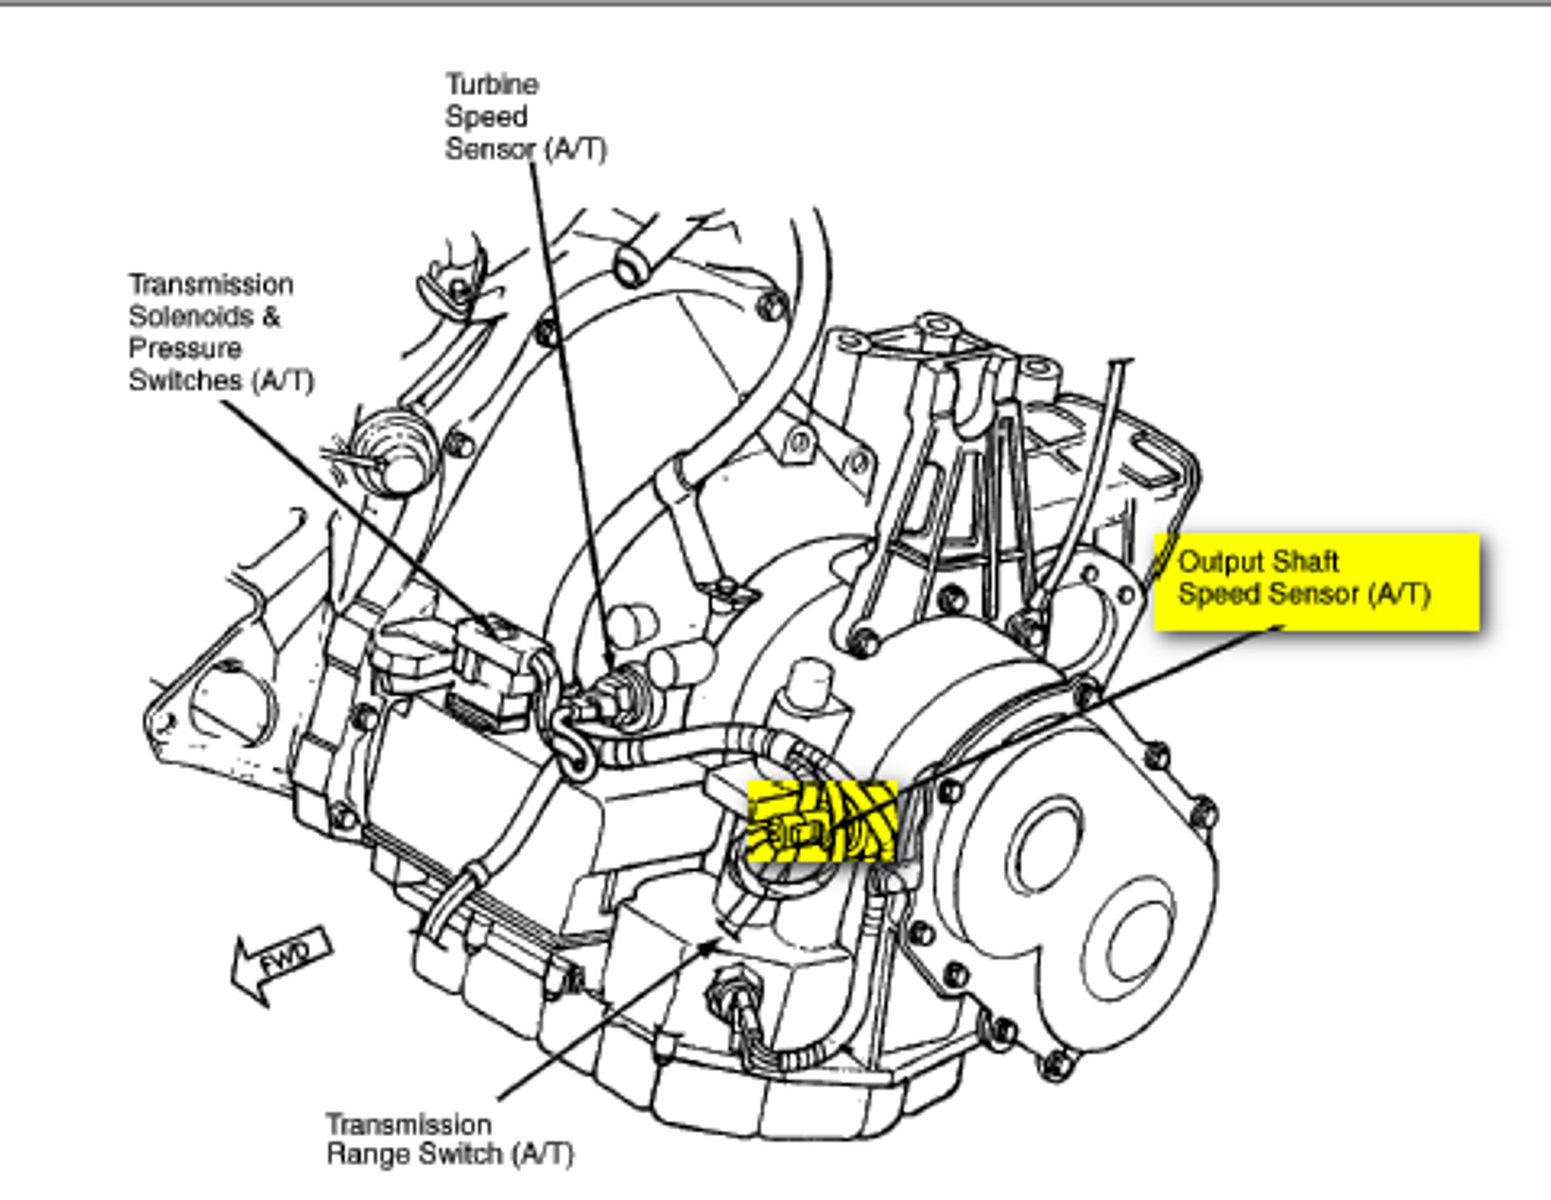 304332 Won T Start 98 Dodge Neon moreover Discussion T4497 ds679105 in addition Dodge9504 further Honda Timing Belt And Chain Lists furthermore Schematics wiring. on 1995 dodge intrepid engine